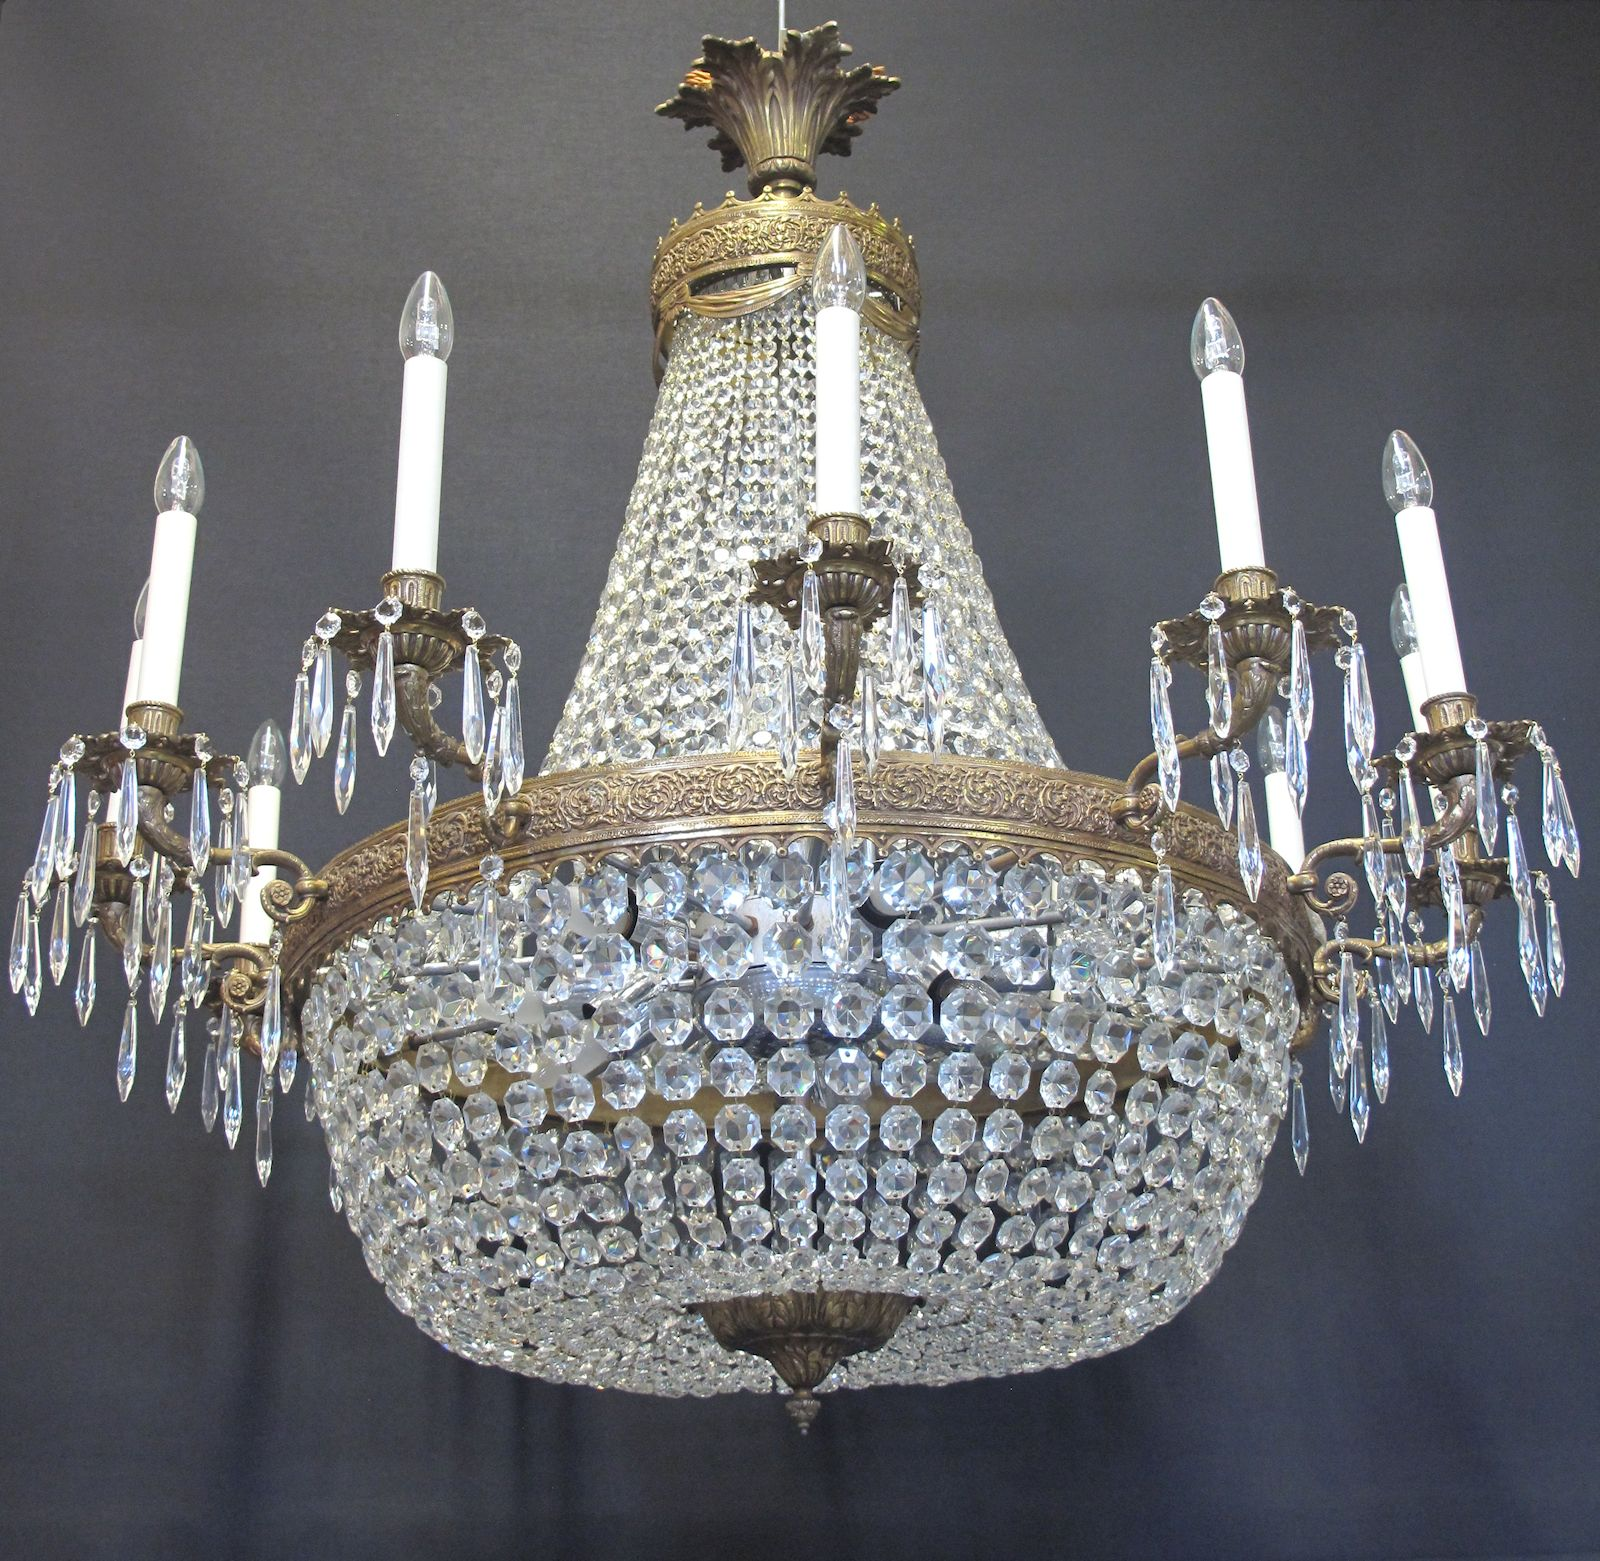 G p cohn antique chandeliers repairs restoration 12 arm tent and bag chandelier ca 1920 aloadofball Image collections